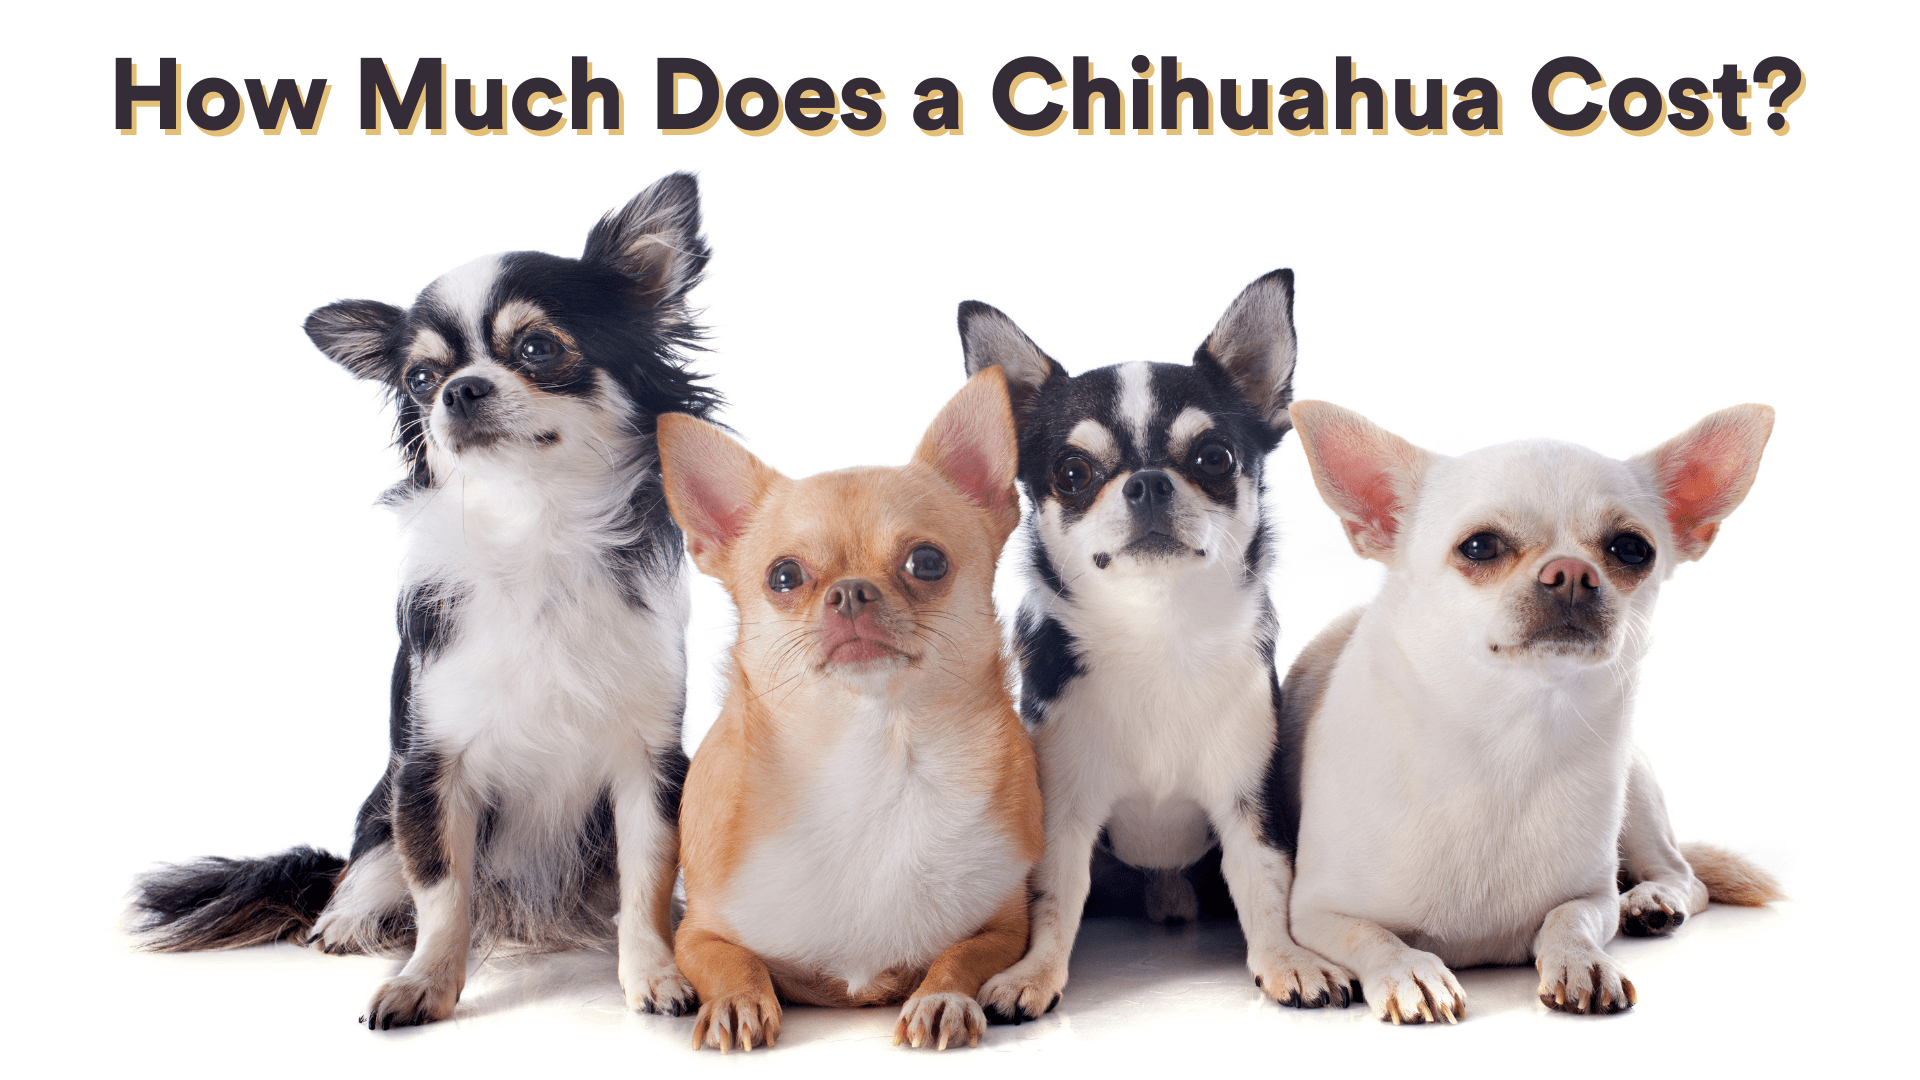 How Much Does a Chihuahua Cost?